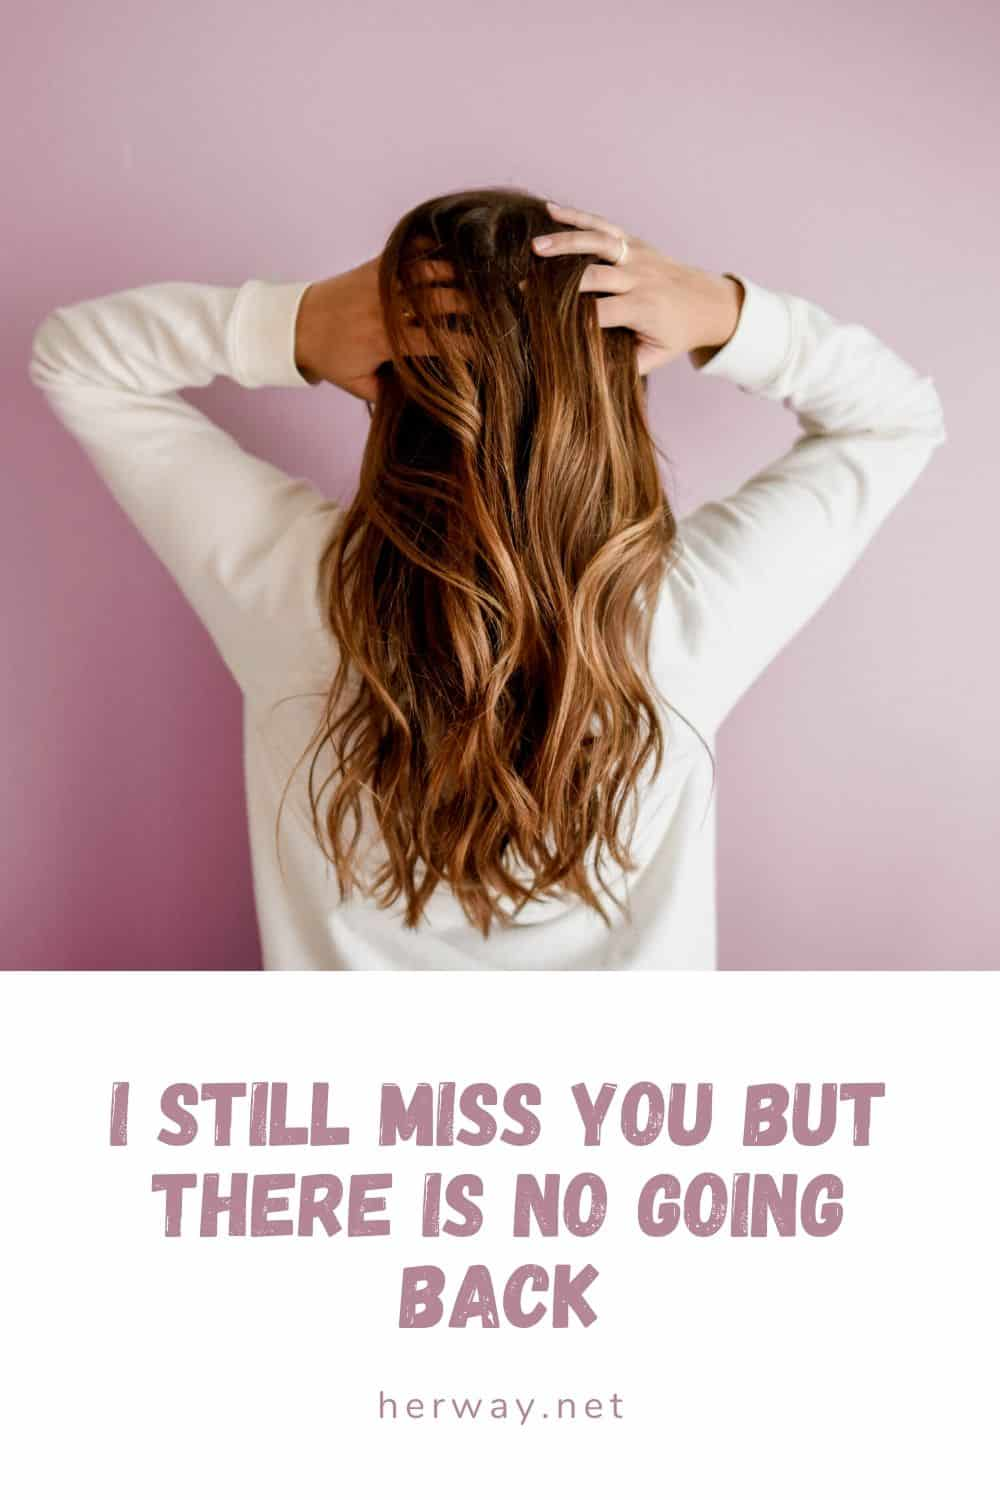 I STILL MISS YOU BUT THERE IS NO GOING BACK